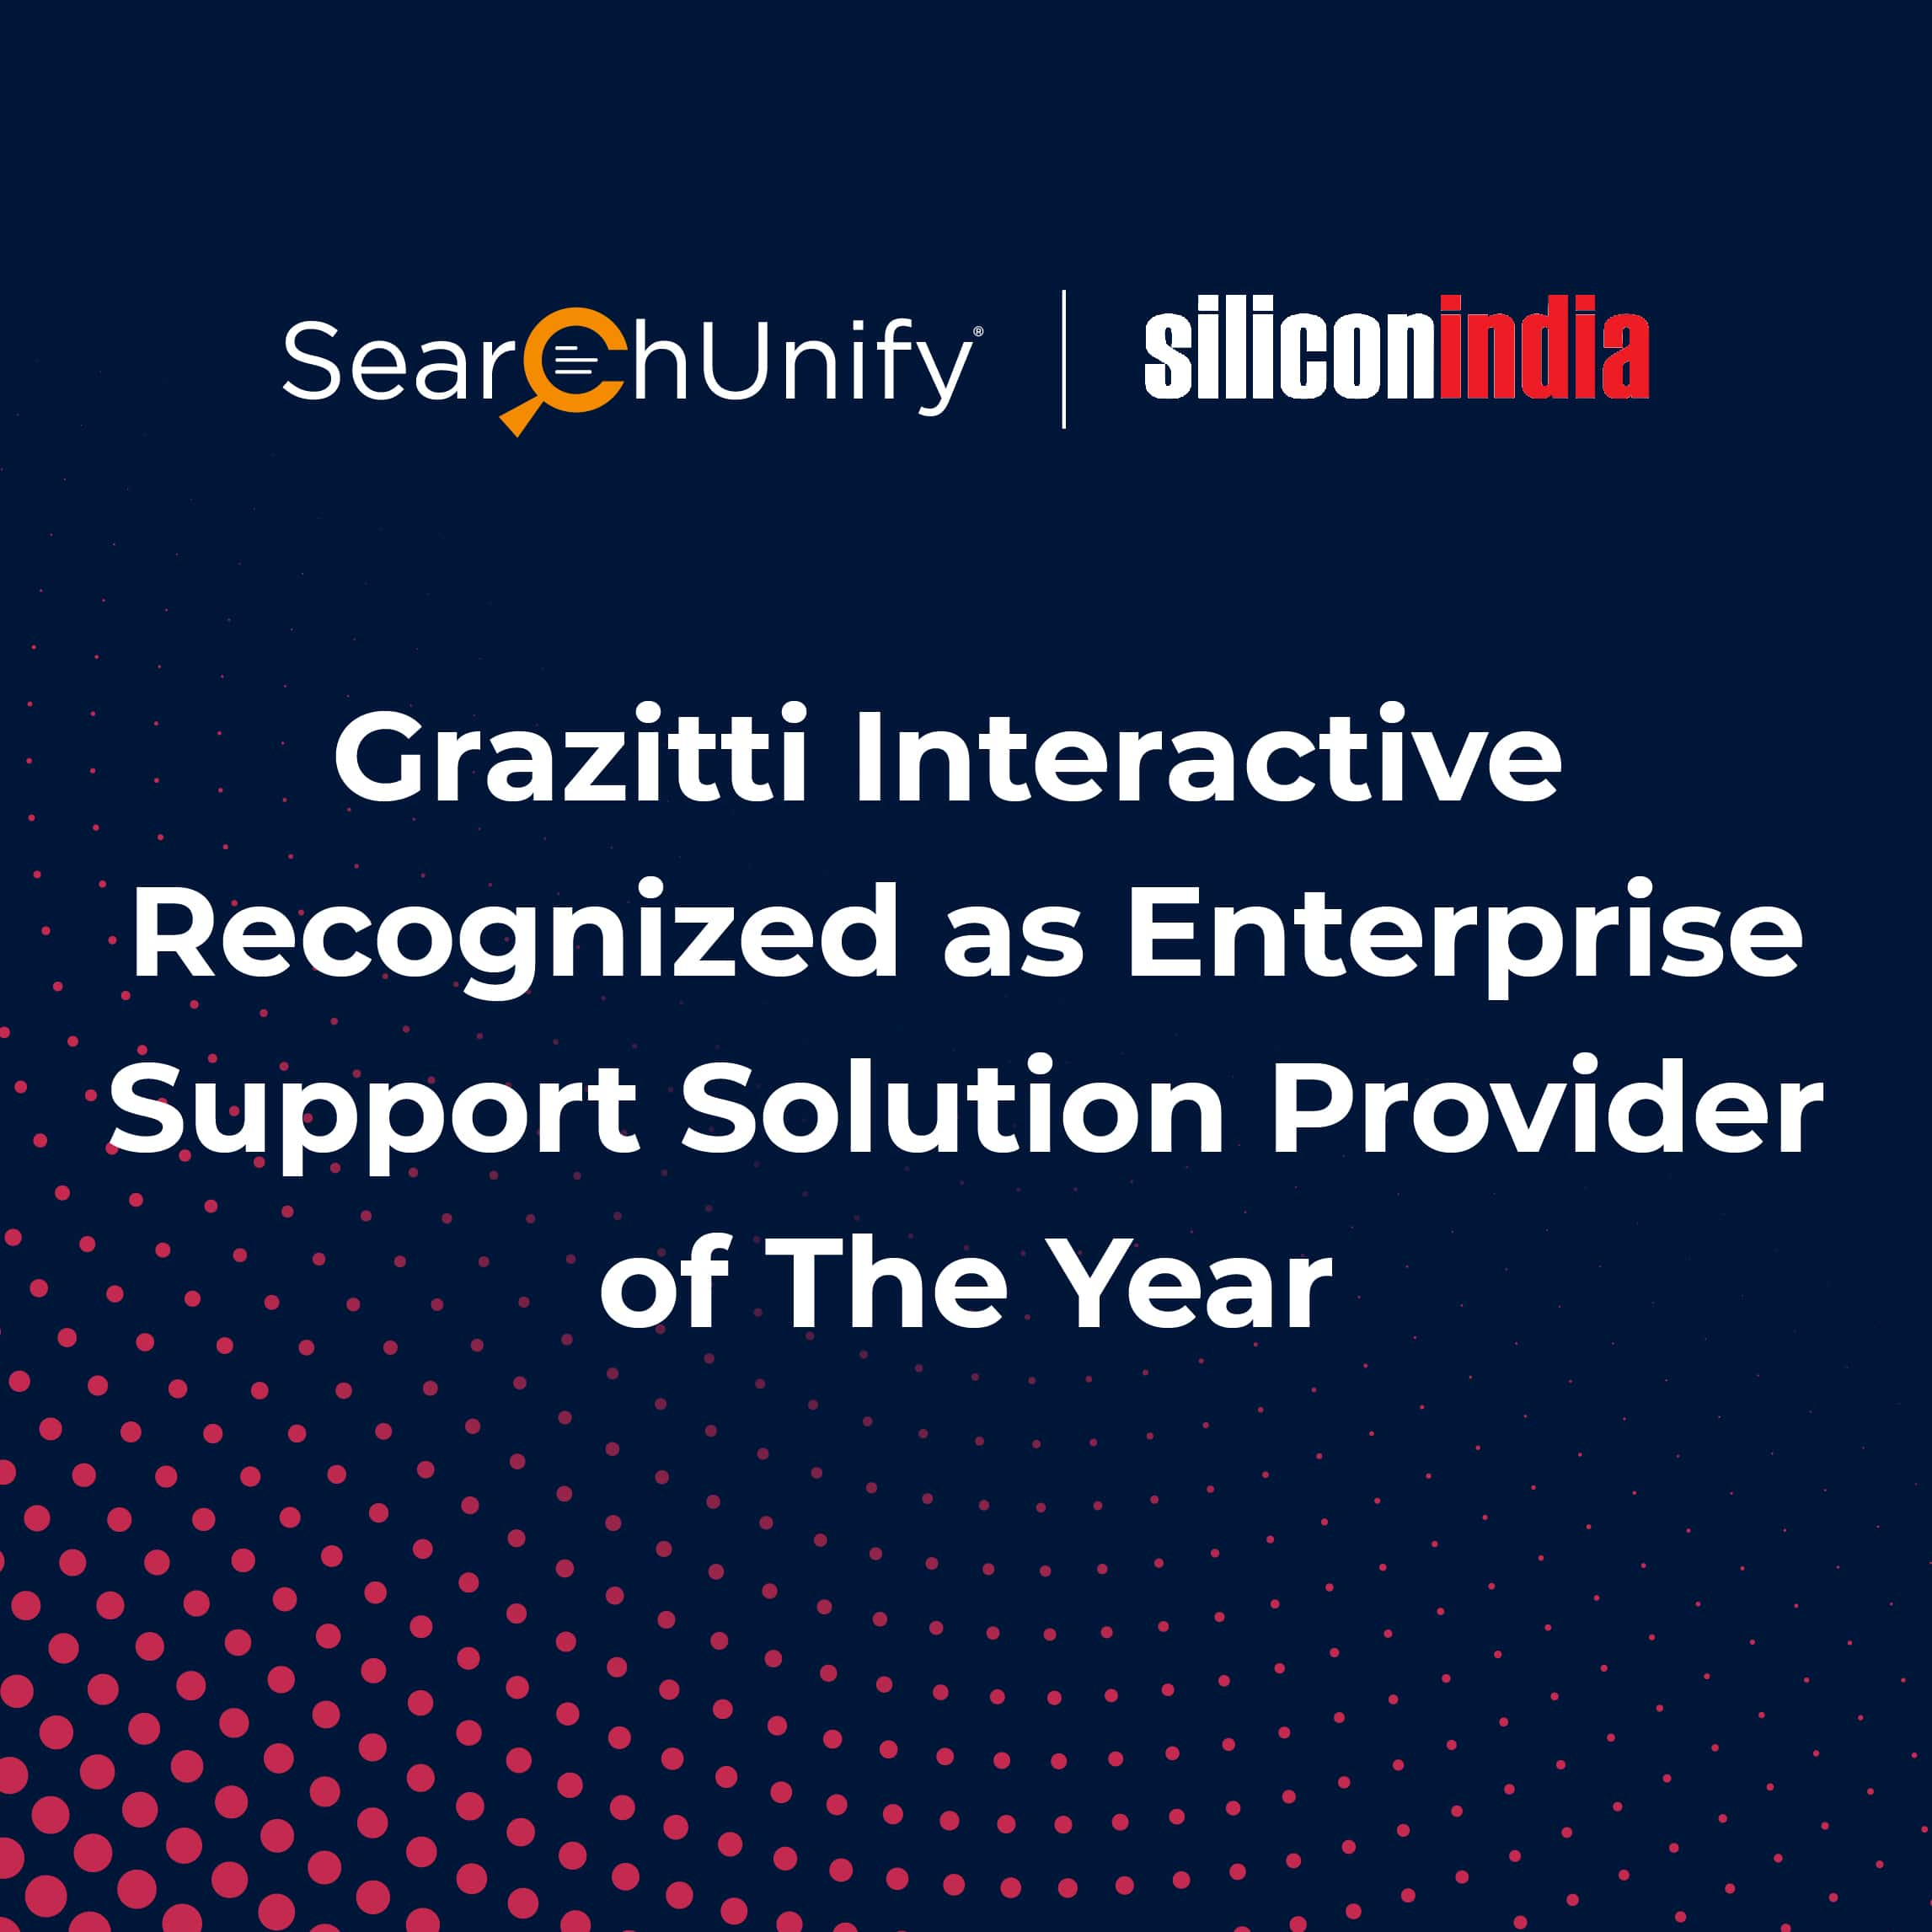 Grazitti Interactive Recognized as Enterprise Support Solution Provider of the Year by siliconindia